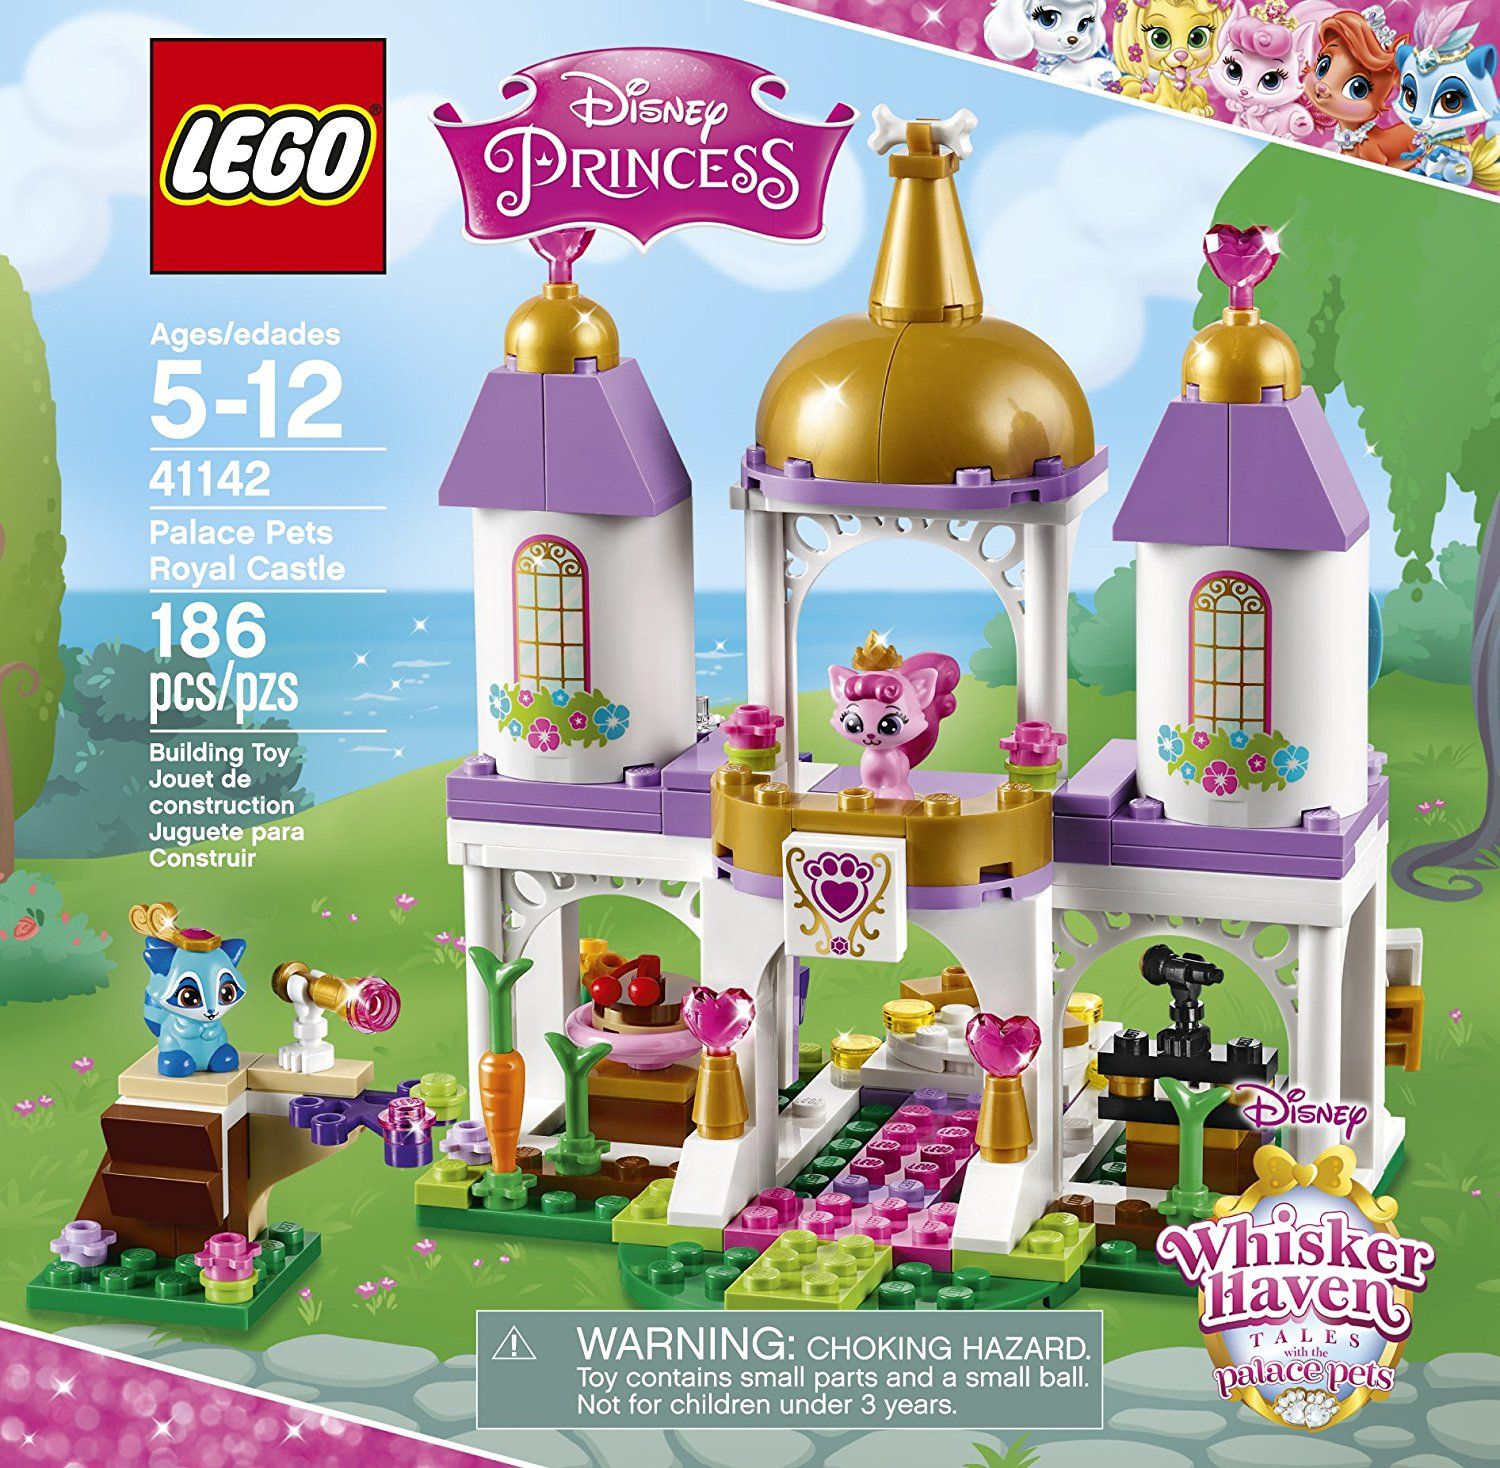 Lego L Disney Whisker Haven Tales With The Palace Pets Palace Pets Royal Castle 41142 Disney Toy A Disney Princess Palace Pets Palace Pets Lego Disney Princess